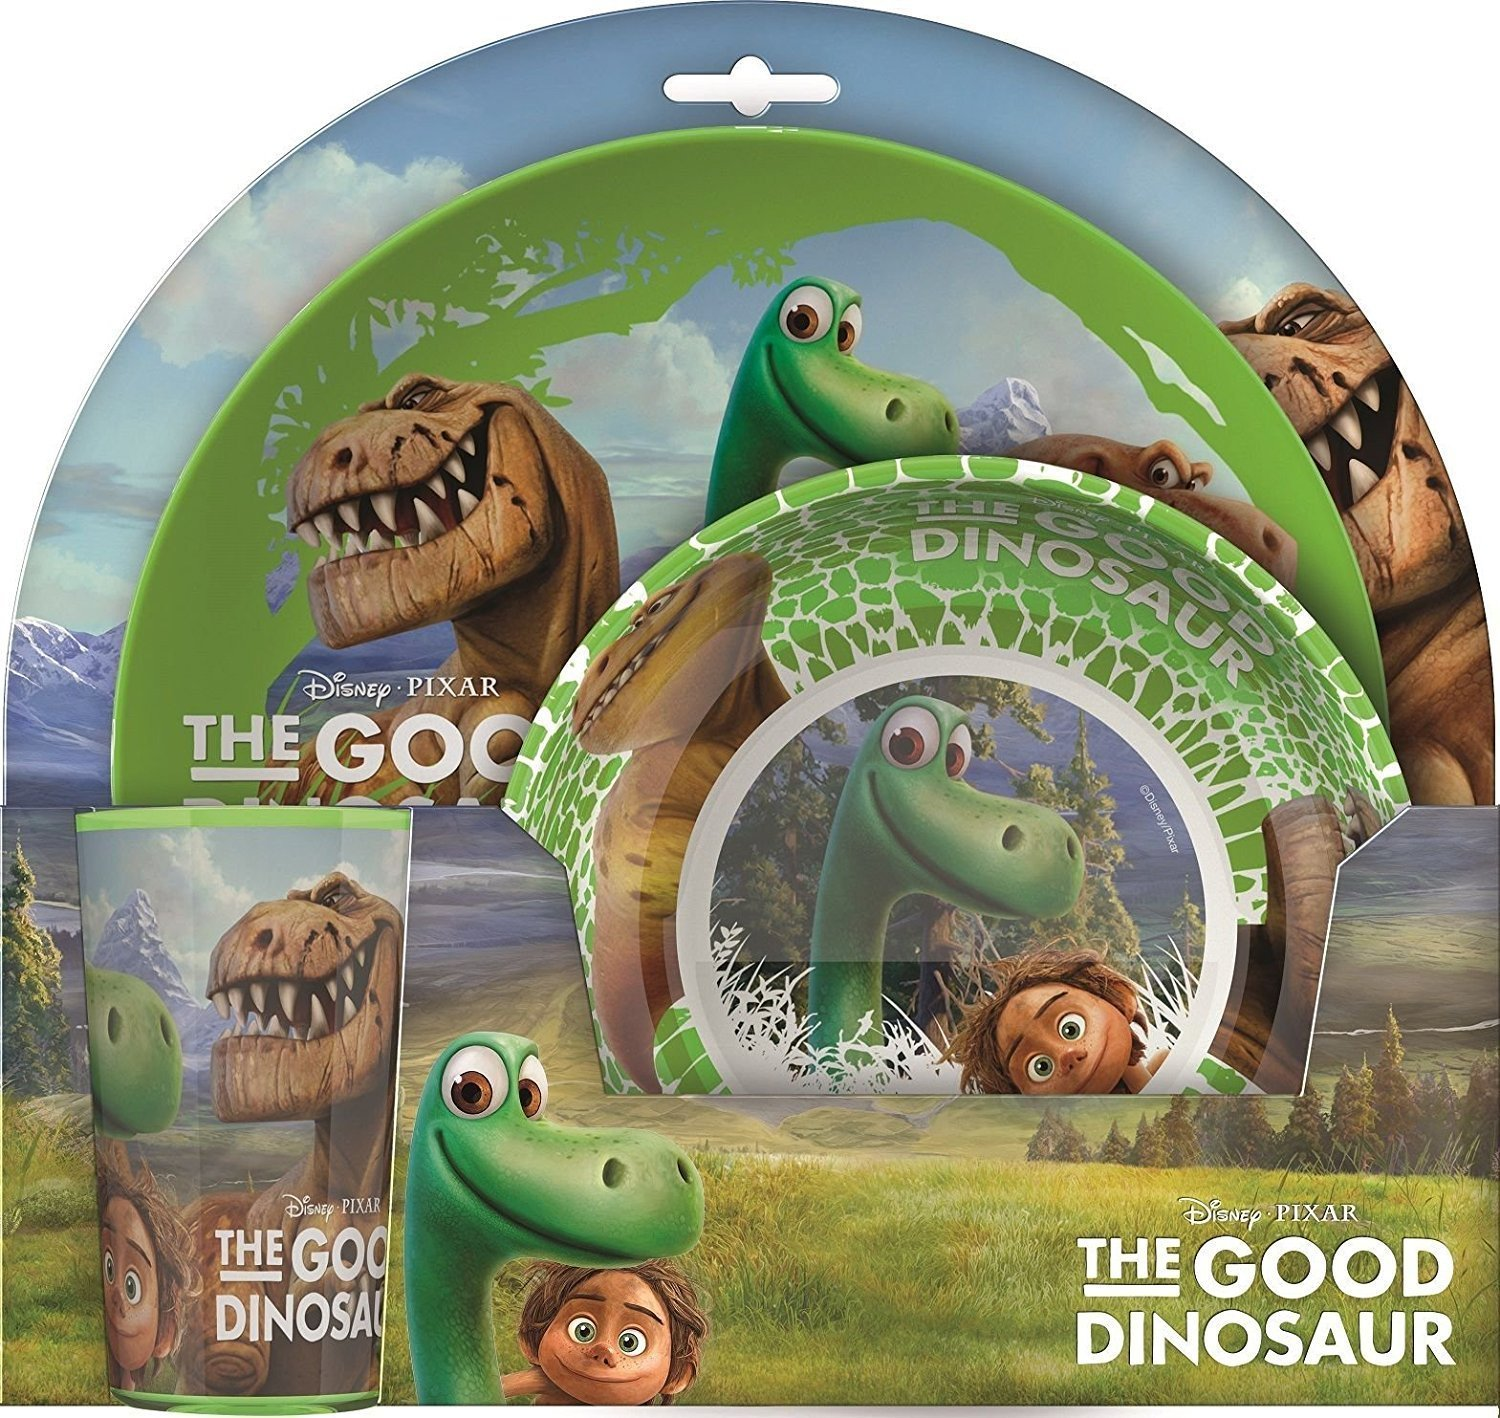 Little Helper Nbba 127673 de Good Dinosaur Toddler Meal Set, Multi-Colour Little Helper Ltd NBBA-127673-DE